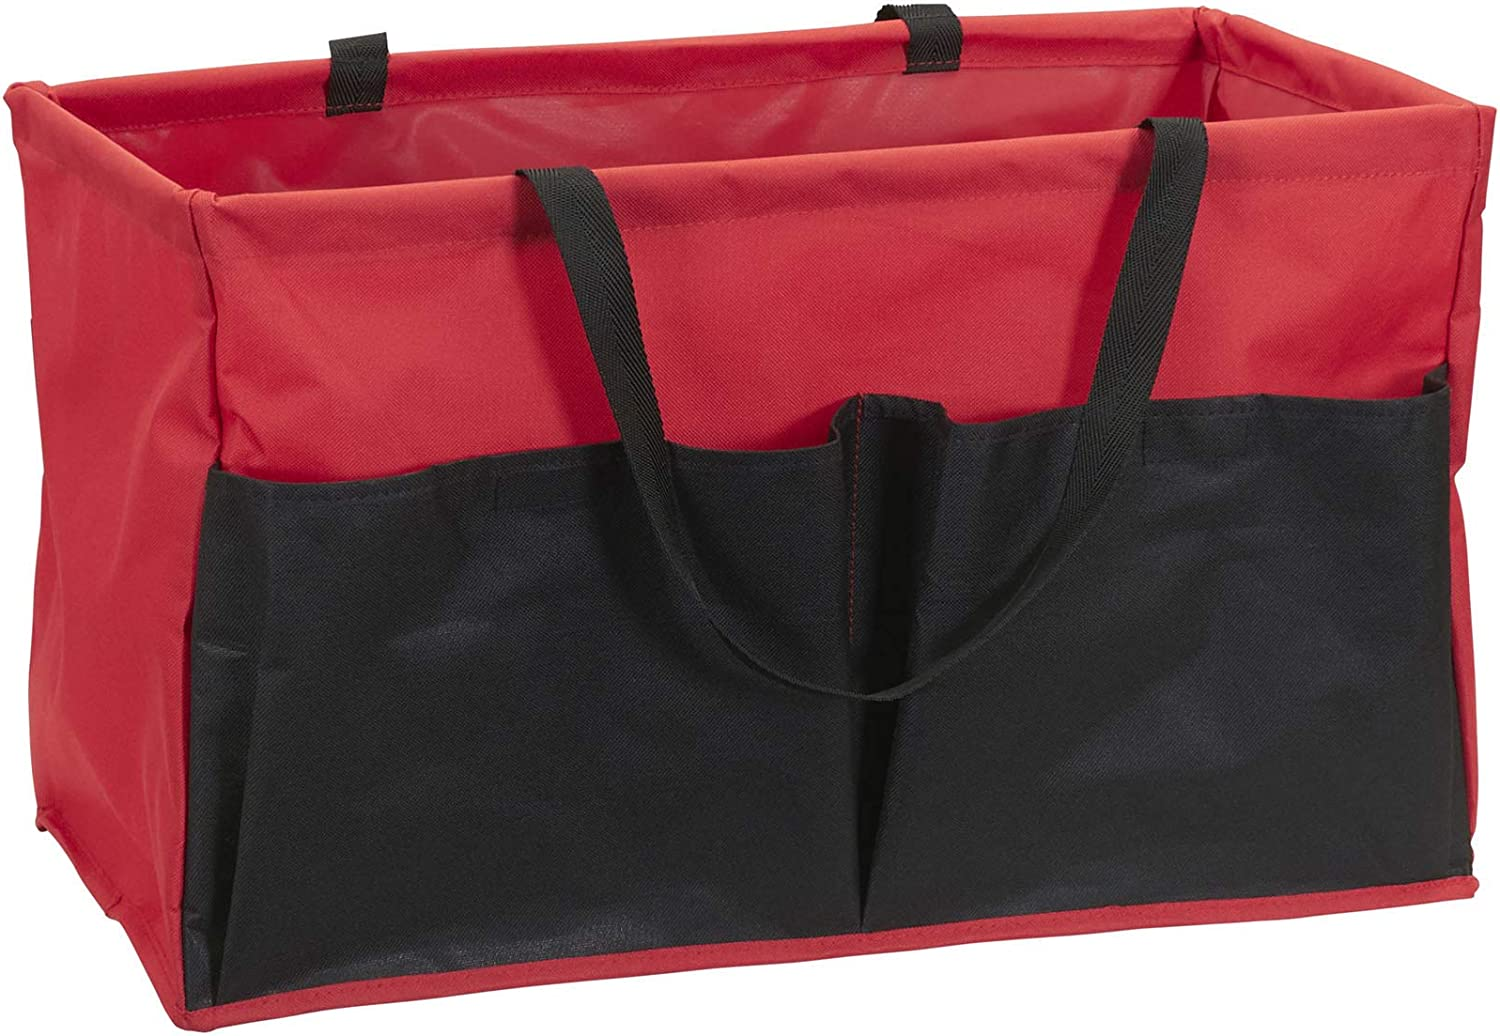 Household Essentials Red Krush Canvas Utility Tote with Pockets | Reusable Grocery Bag Black